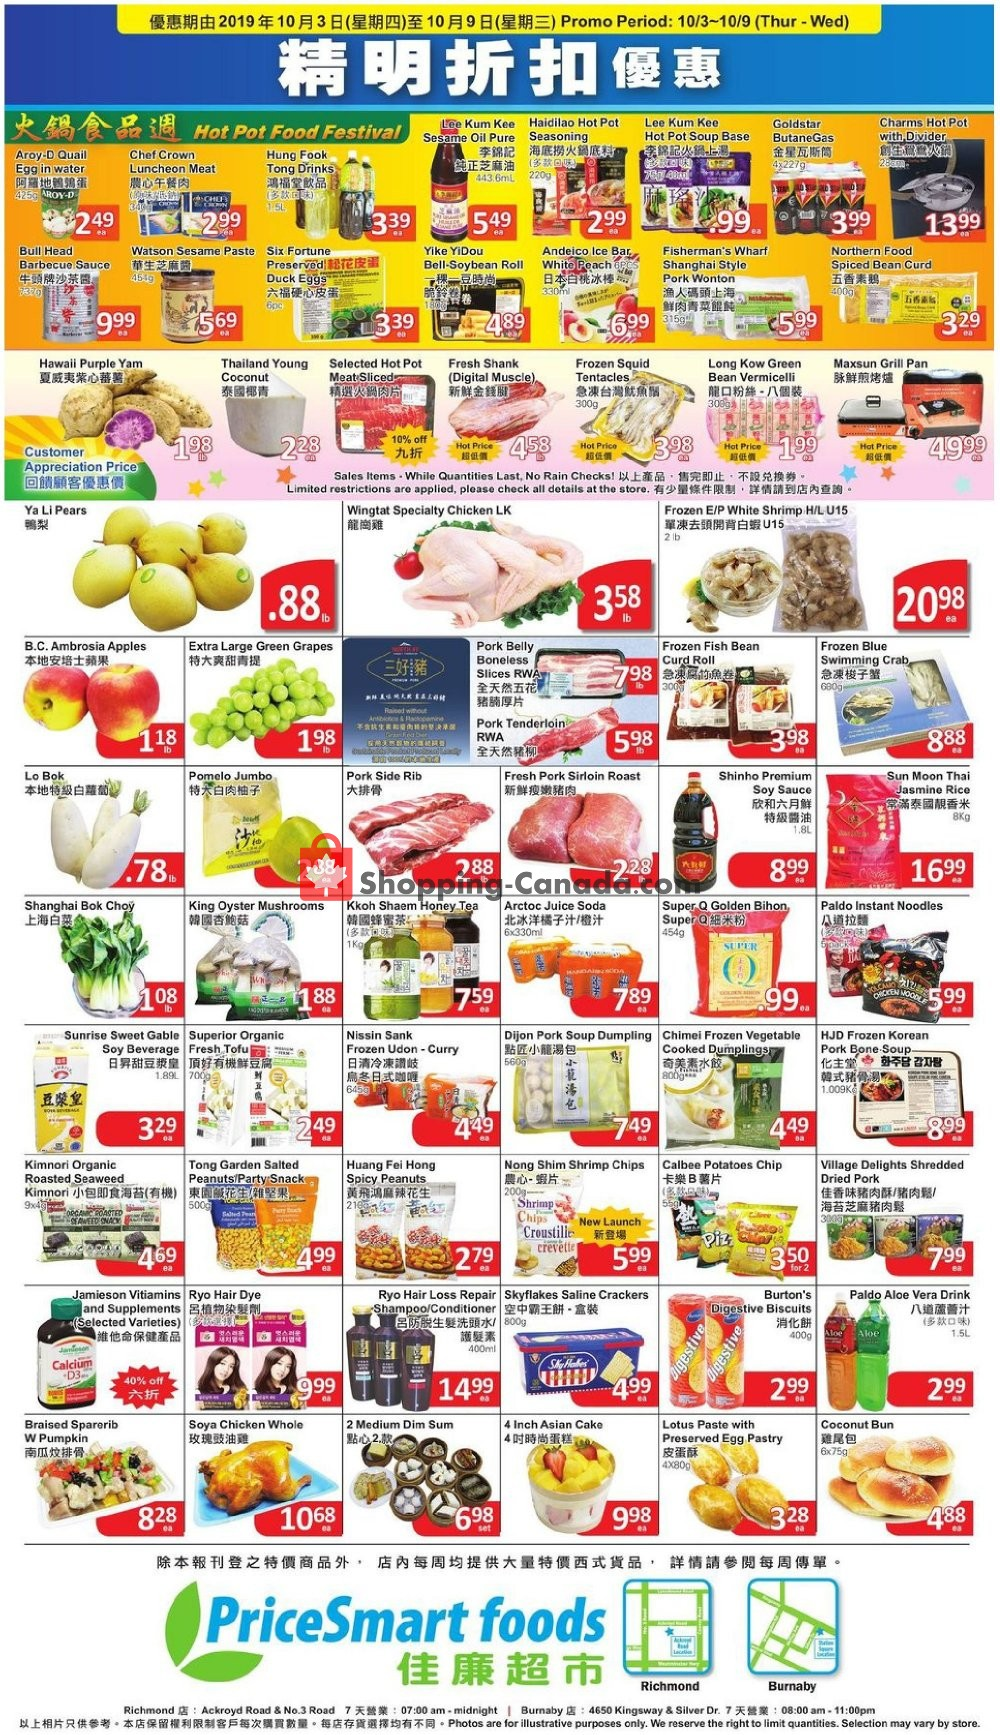 Flyer PriceSmart Foods Canada - from Thursday October 3, 2019 to Wednesday October 9, 2019